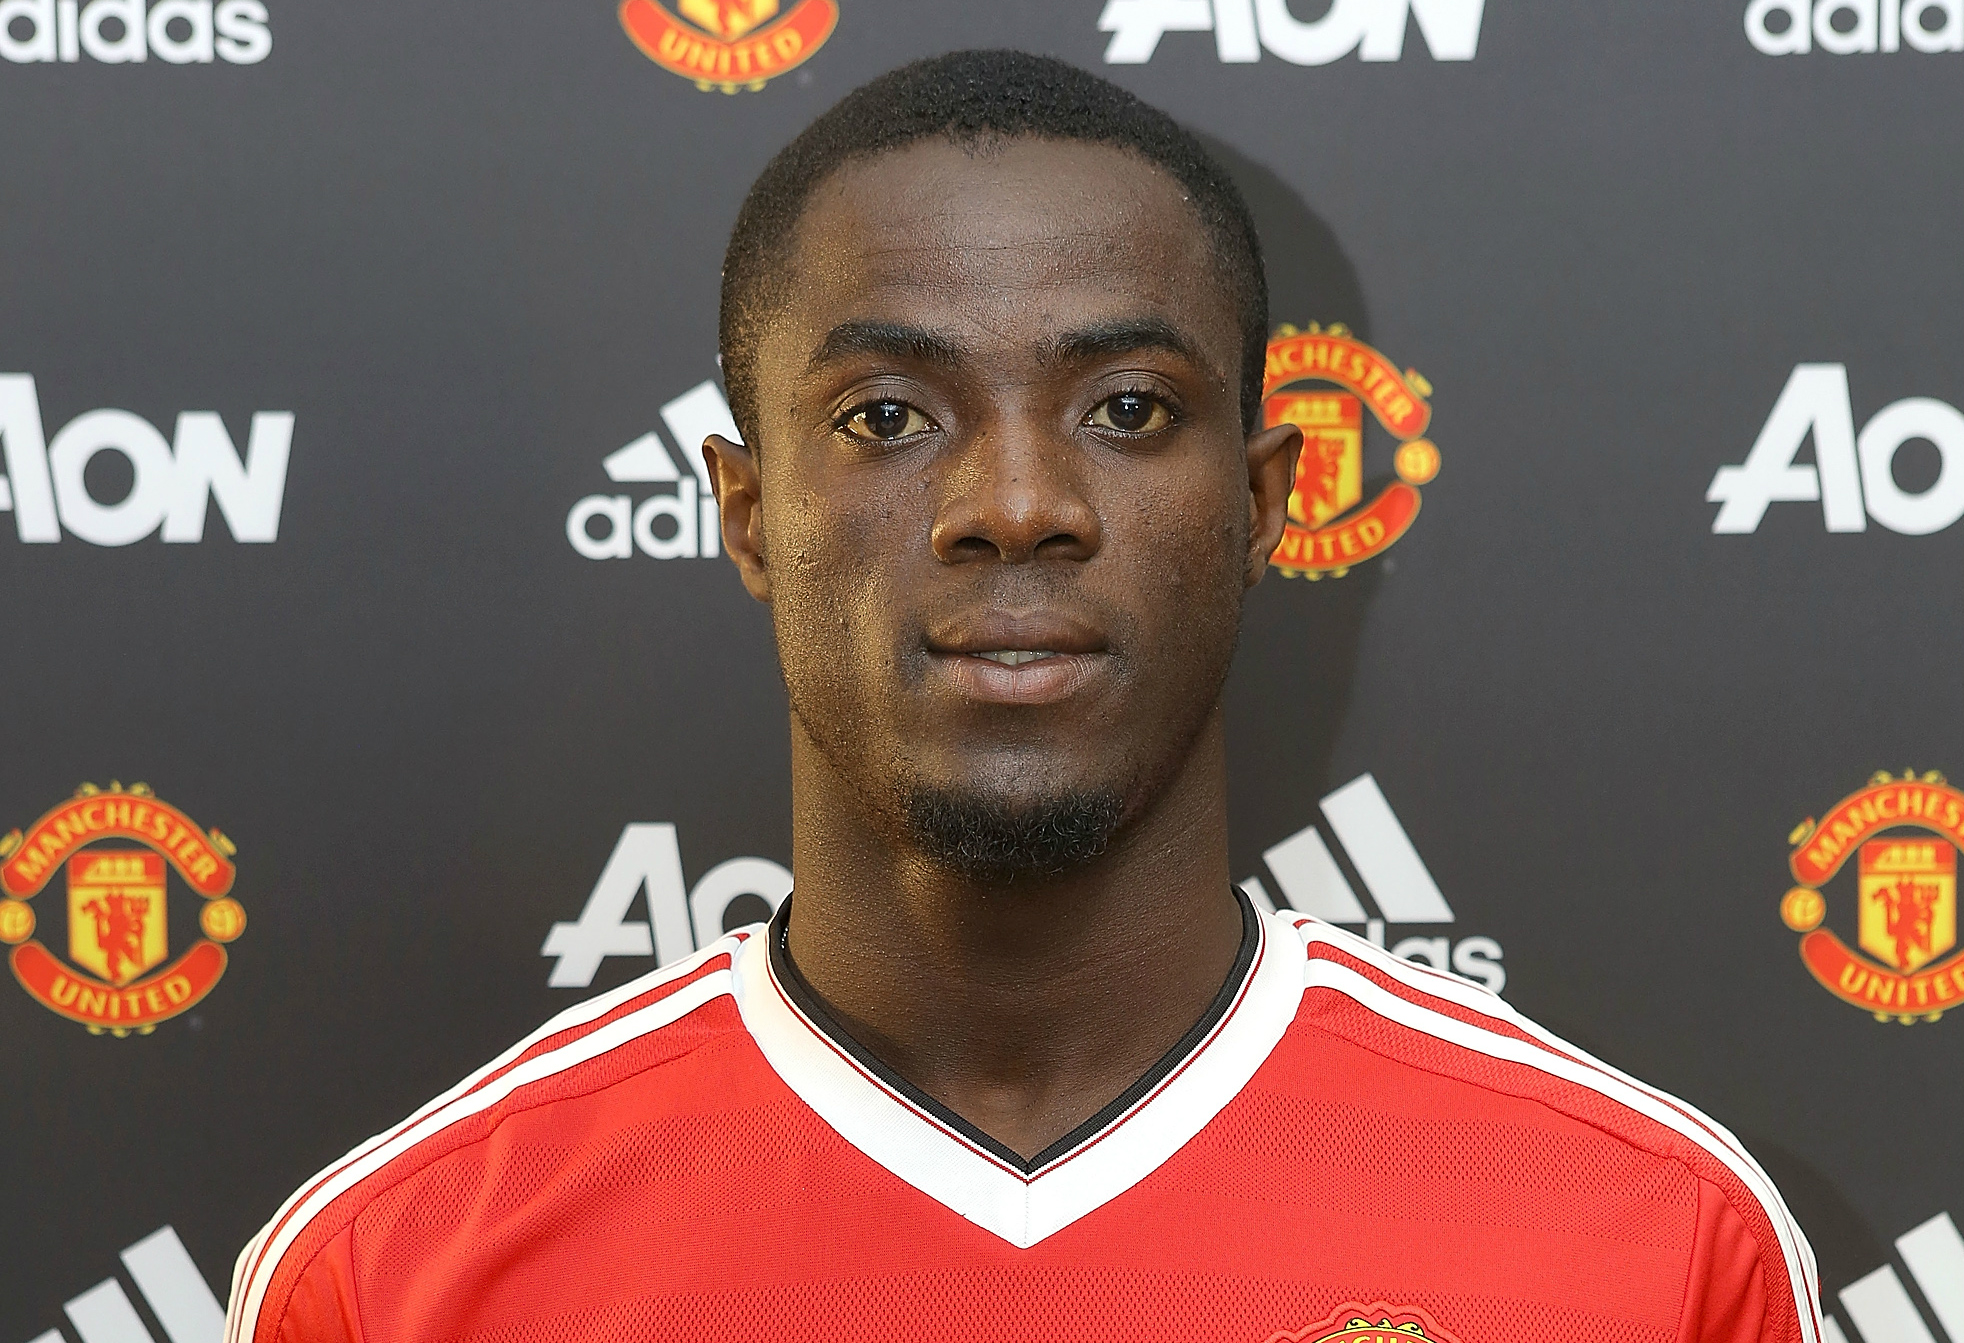 New Manchester United signing Eric Bailly can become one of best, claims Jose Mourinho